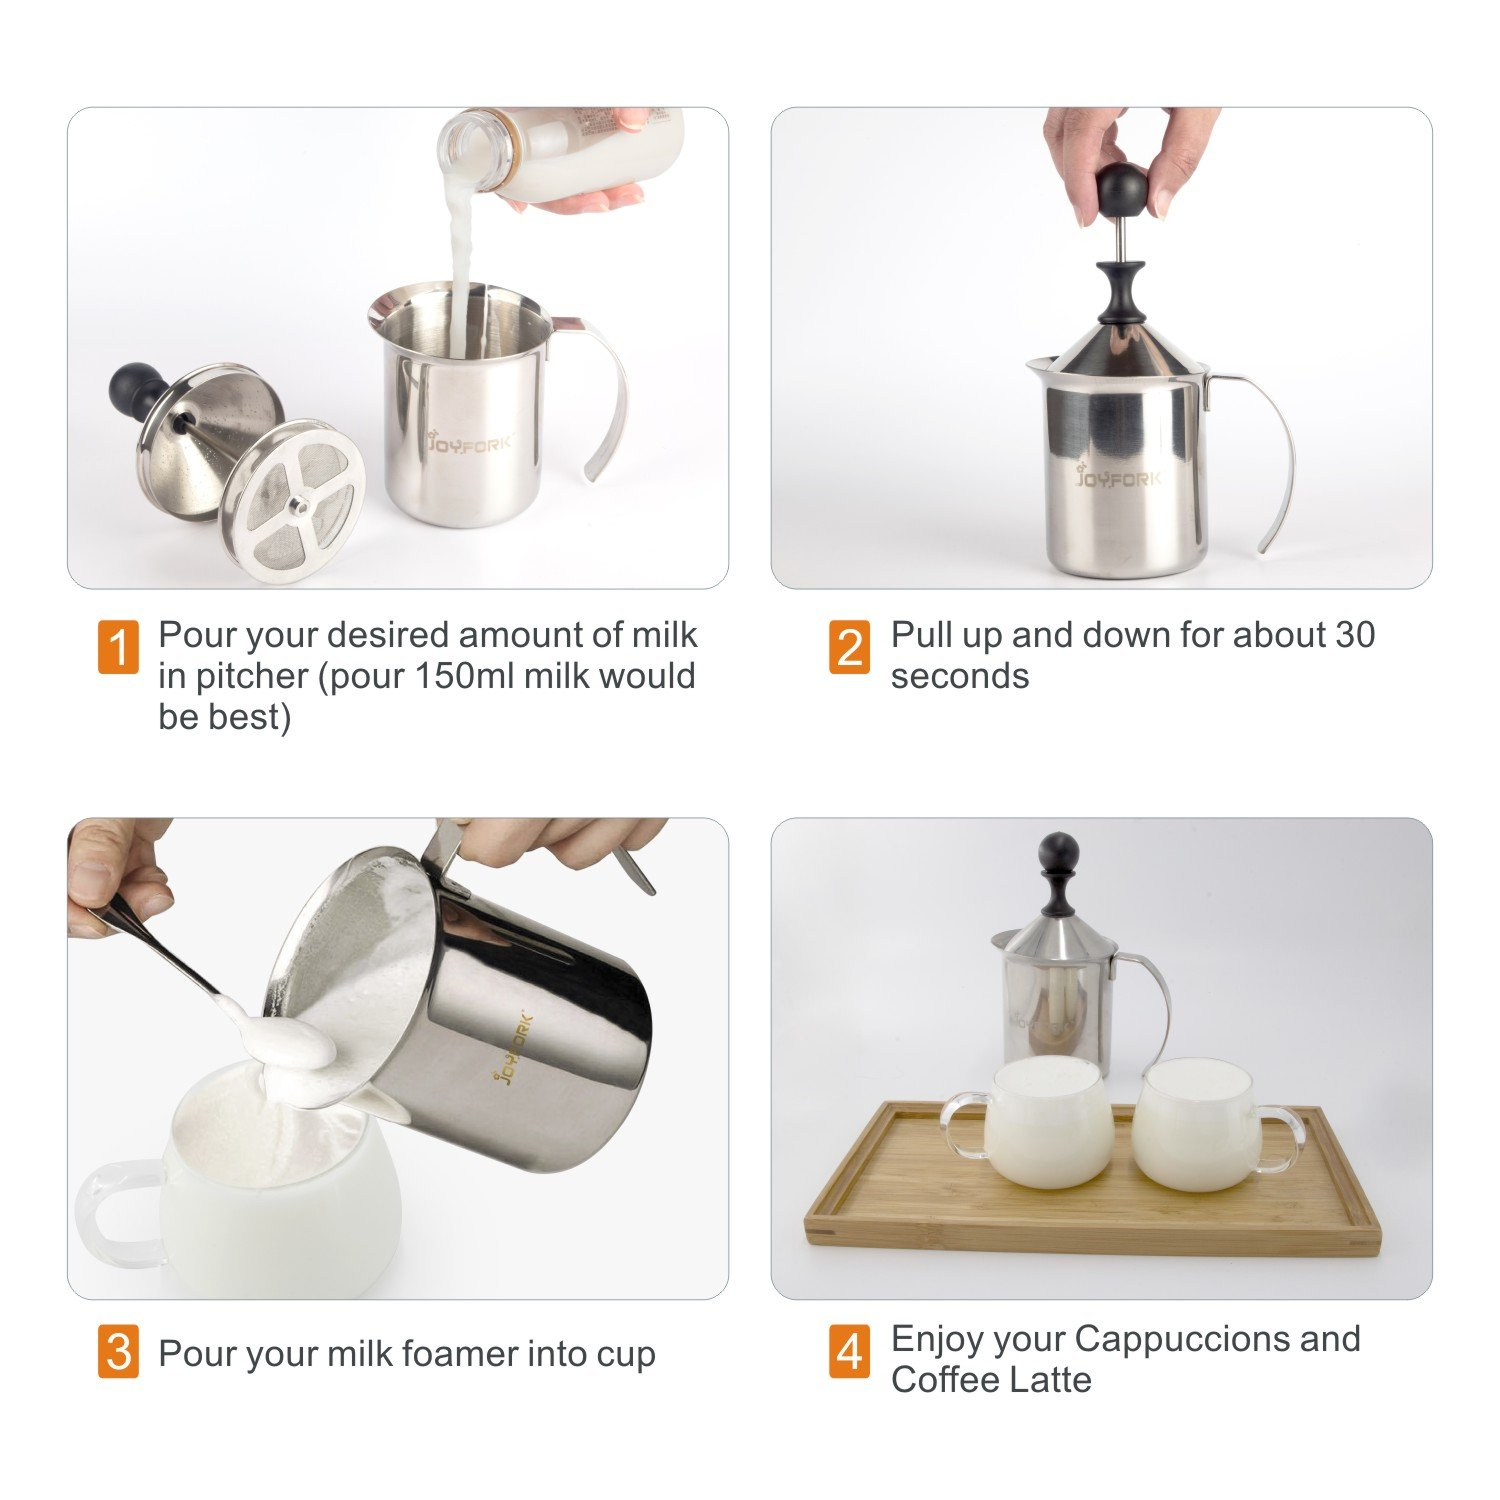 JoyFork Manual Milk Frother, Stainless Steel Hand Pump Milk Foamer, Handheld Milk Frothing Pitchers,Manual Operated Milk Foam Maker For Cappuccions and Coffee Latte 14-Ounce/400ml by JoyFork (Image #2)